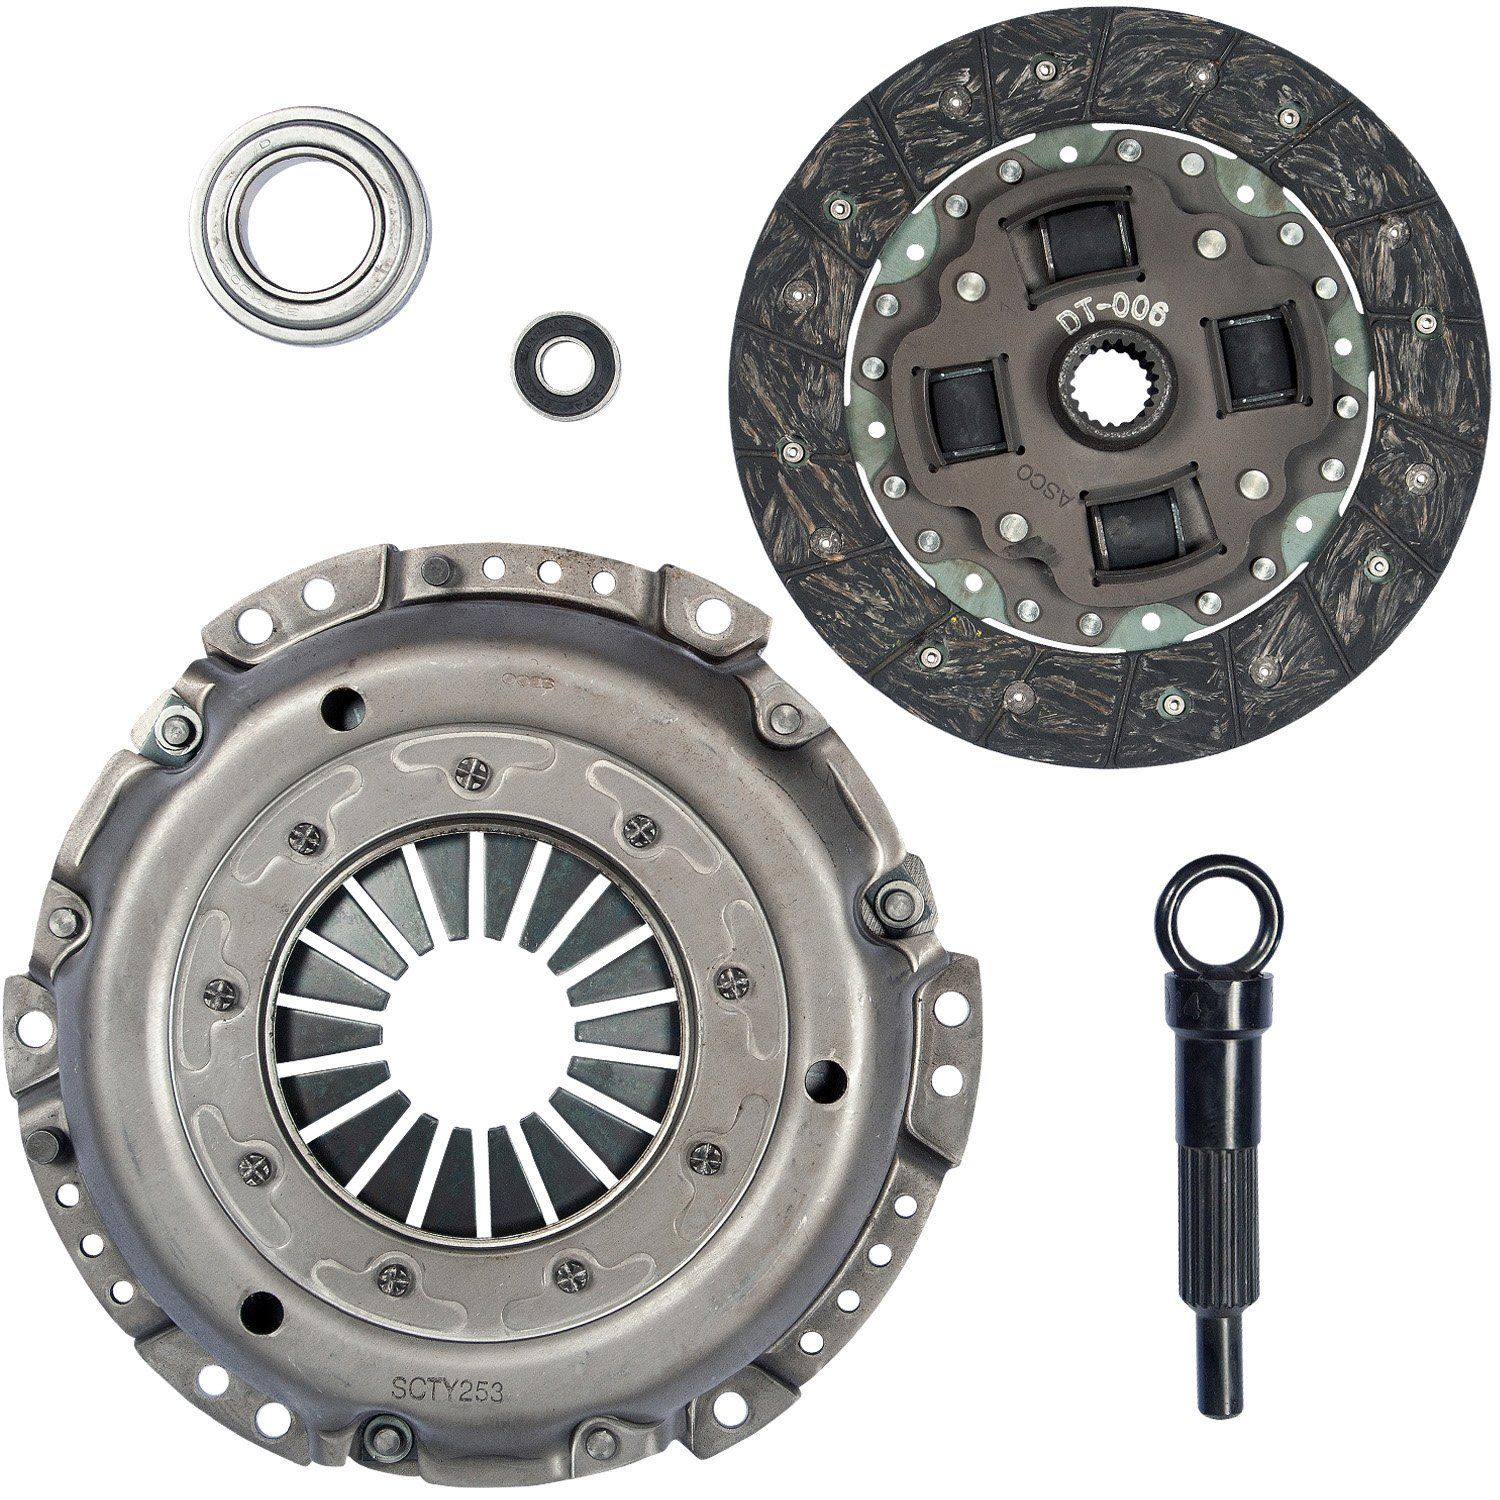 Toyota Starlet Clutch Kit Replacement (Exedy, Rhino Pac) » Go-Parts